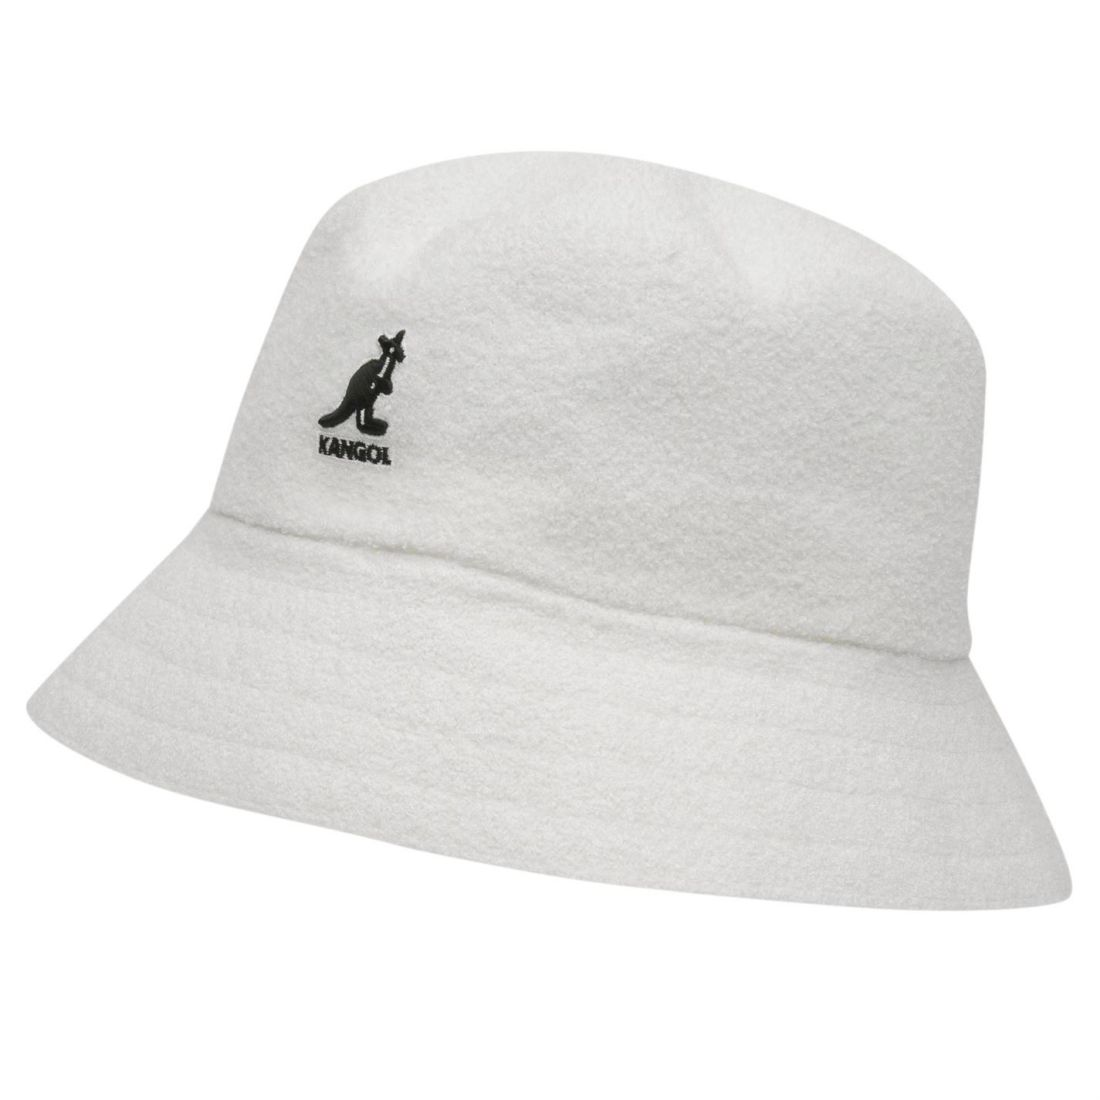 b1fe80f6db9 Kangol Boucle Bucket Hat Mens Gents